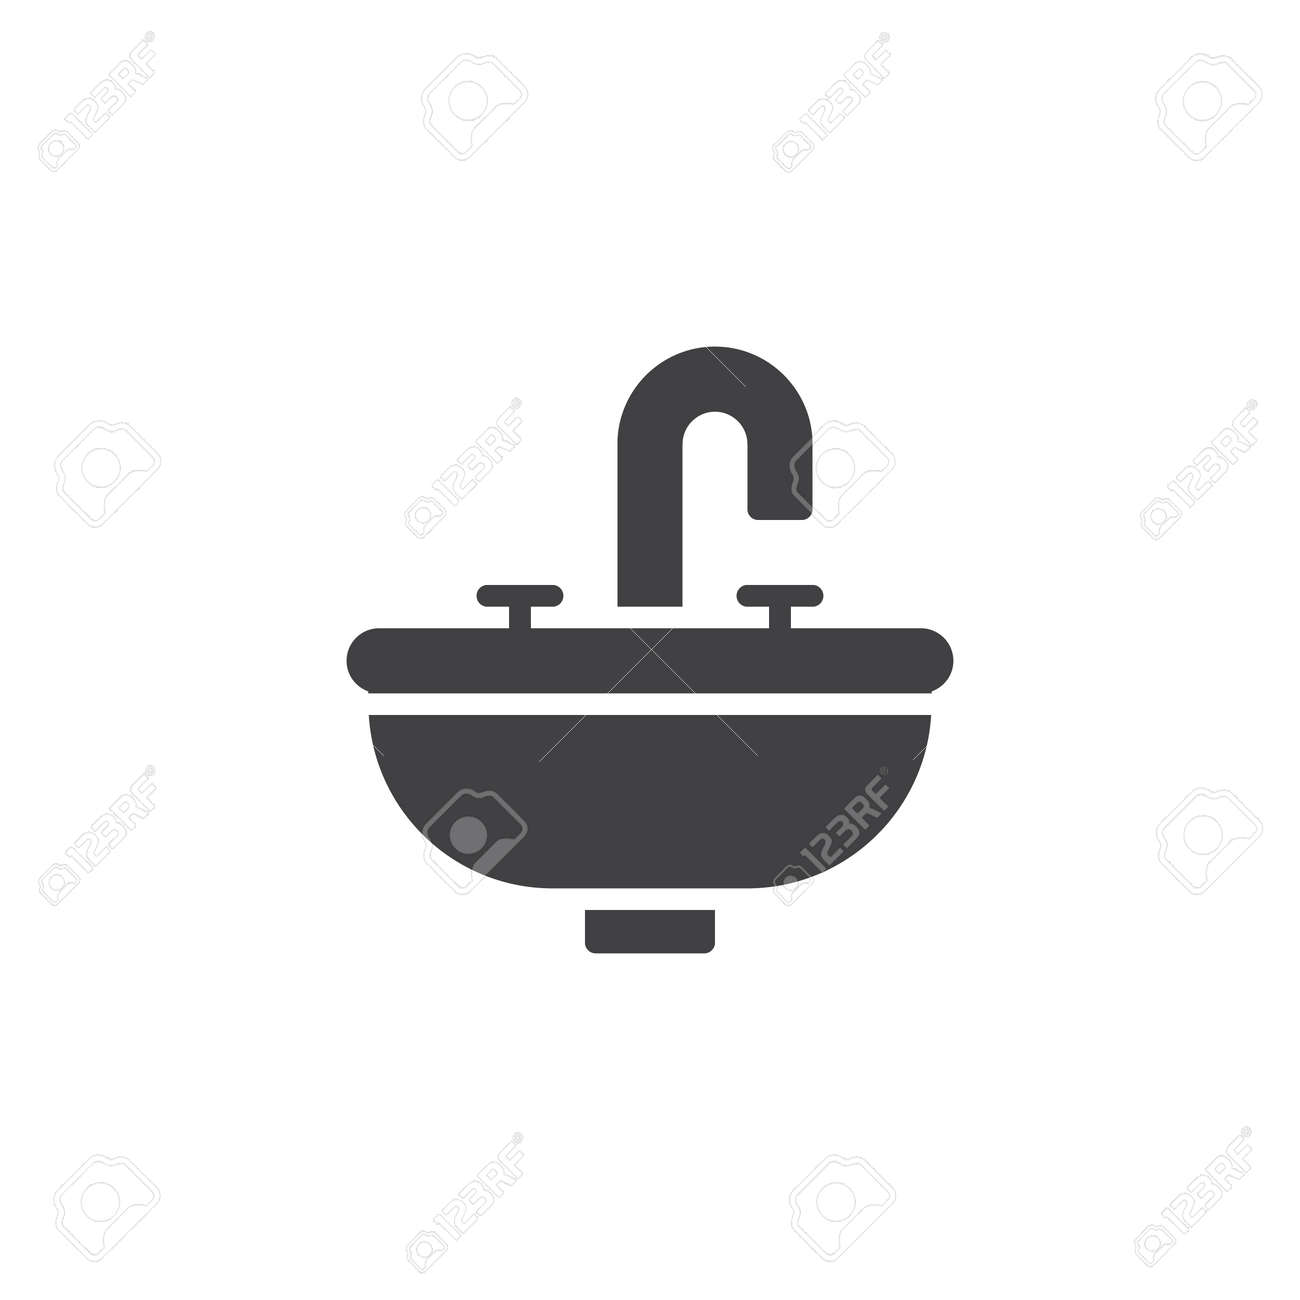 Symbol Logo Illustration Bathroom Sink Unit Icon Vector Filled Flat Sign Solid Pictogram Isolated On White